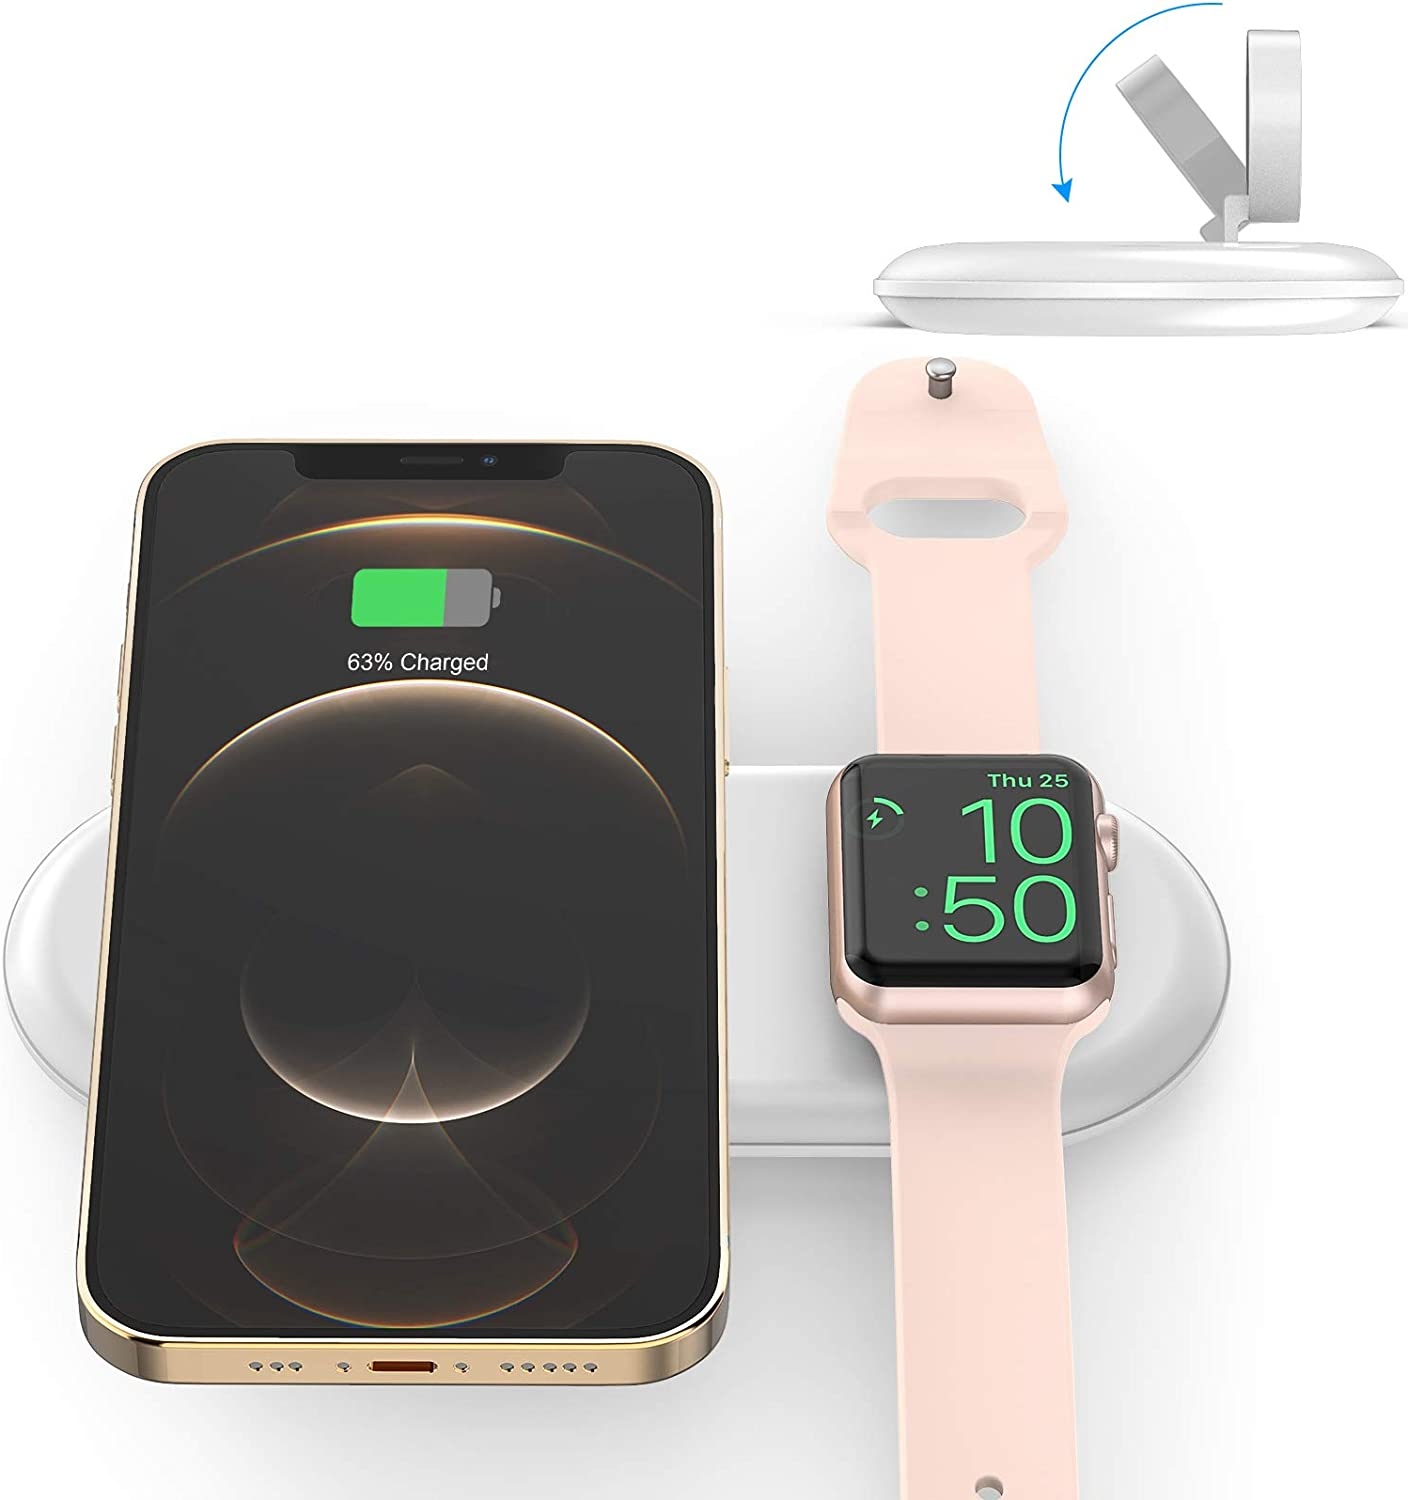 i.VALUX Wireless Charging Station Dock,2 in 1 Dual Wireless Charger Pad Compatible Apple Watch Series 6 5 4 3 2 1 SE Nike 44 40 42 38mm, 10W Fast Qi Portable Travel Charger for AirPods iPhone Samsung